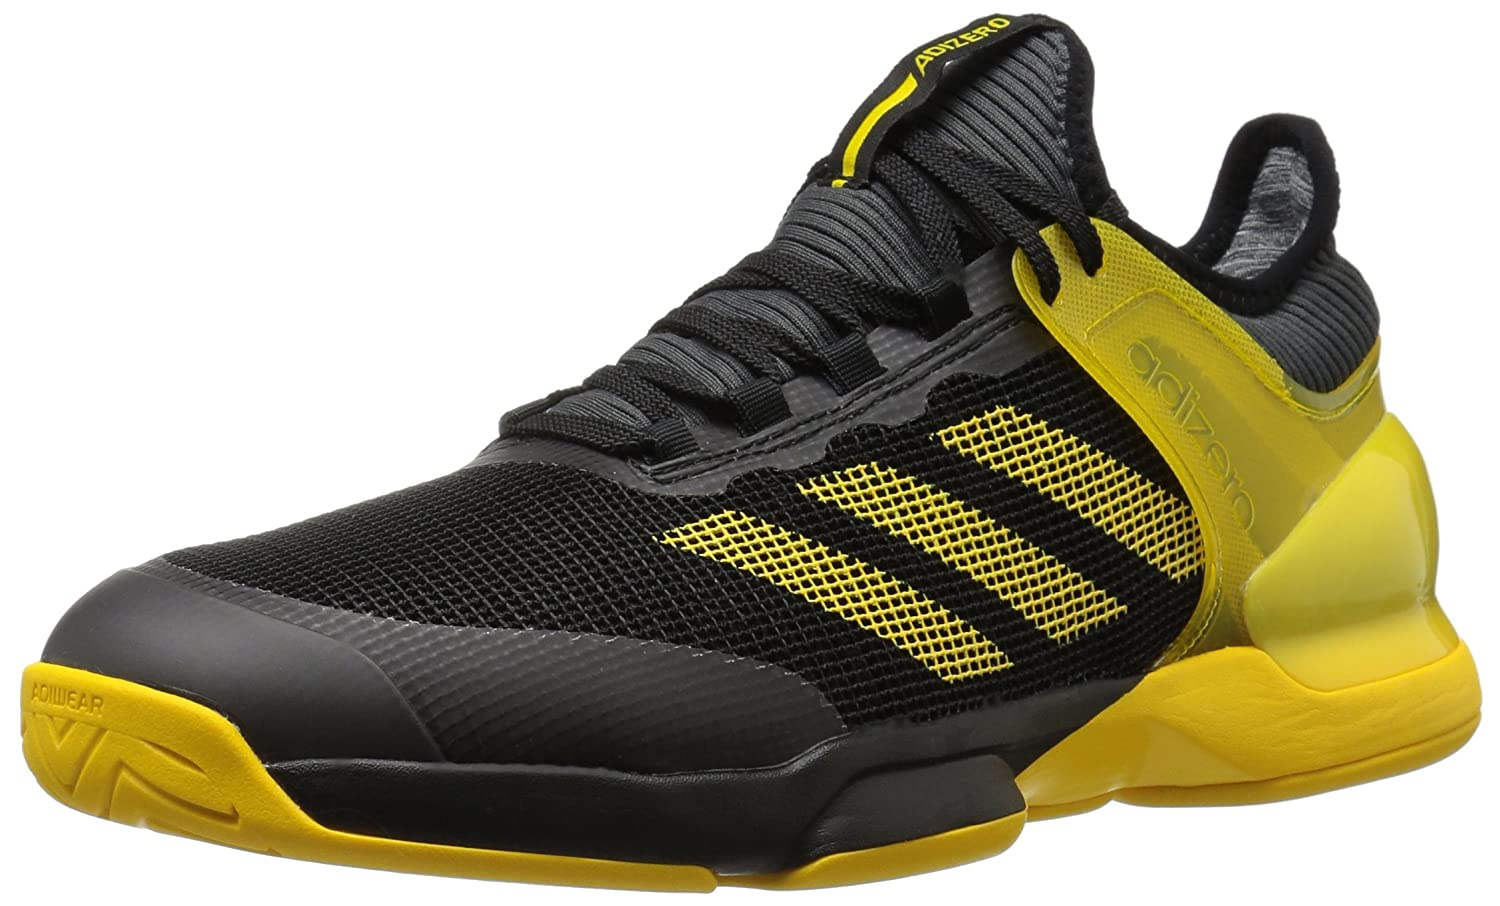 Adidas Originals Men's Adizero Ubersonic 2 Tennis Shoe by Adidas+Originals